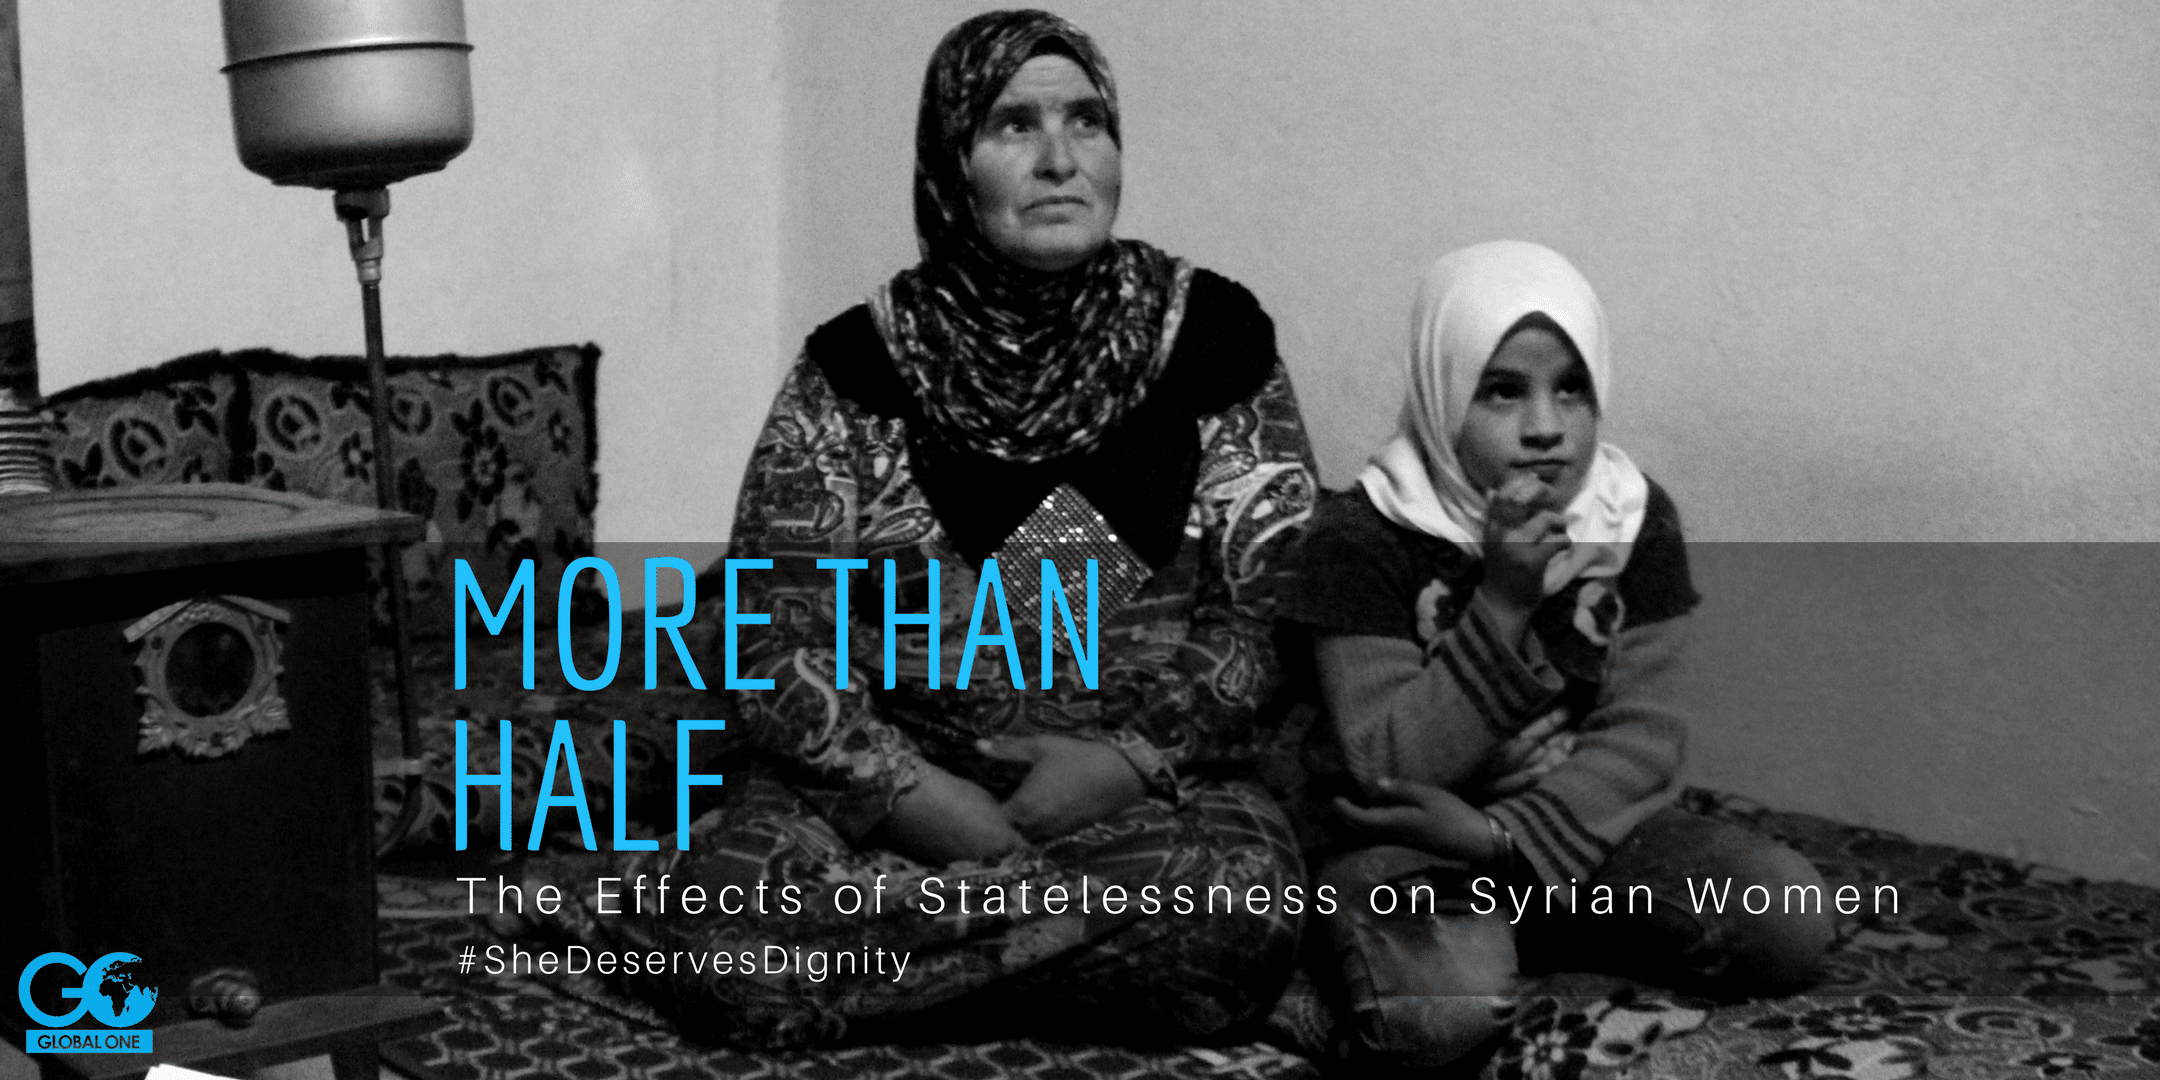 REPORT: More Than Half: The Effects of Statelessness on Syrian Refugee Women